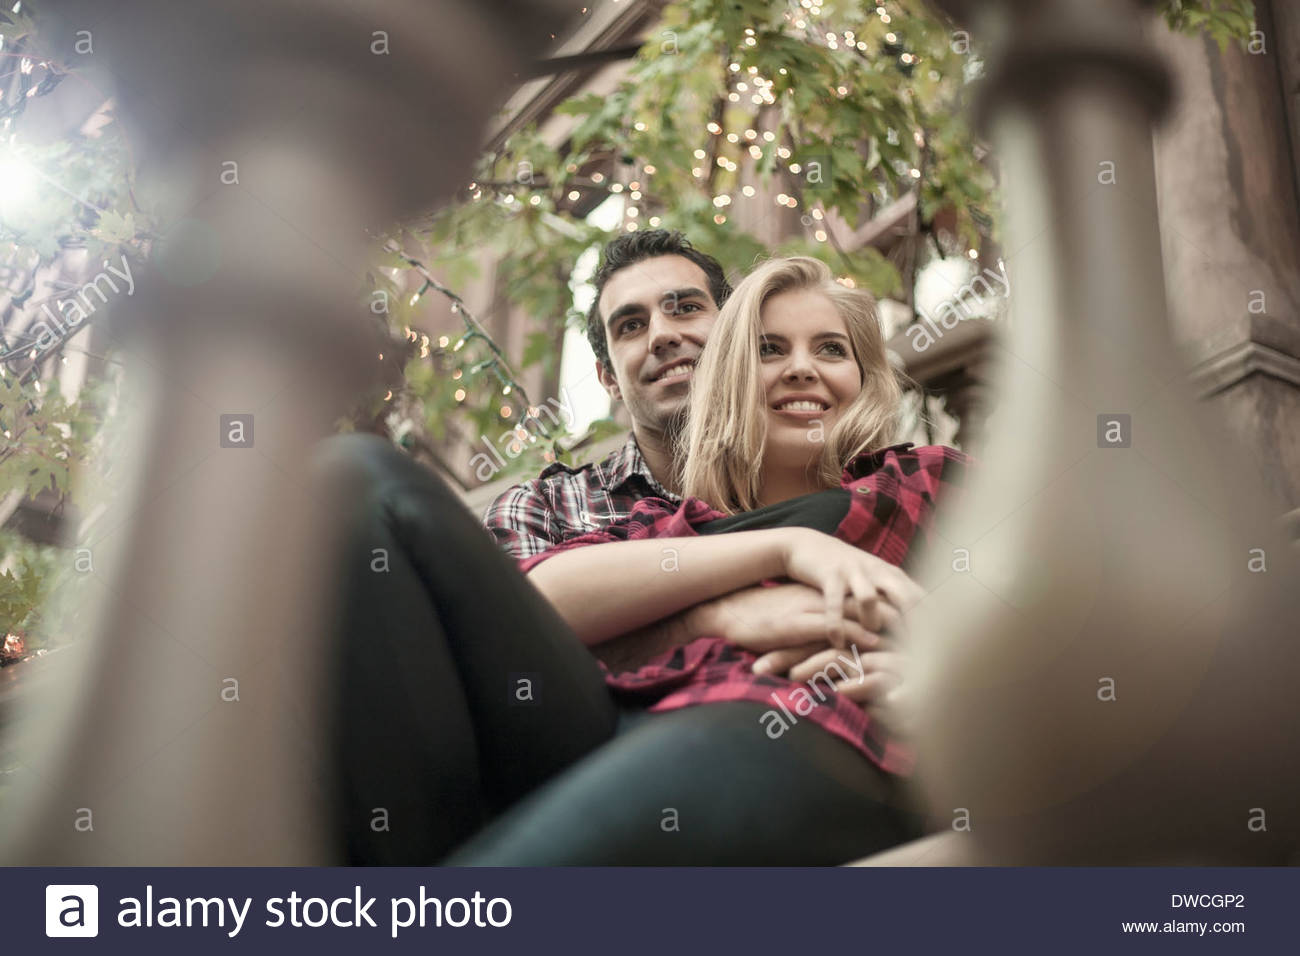 Romantic young couple sitting on traditional city apartment steps - Stock Image